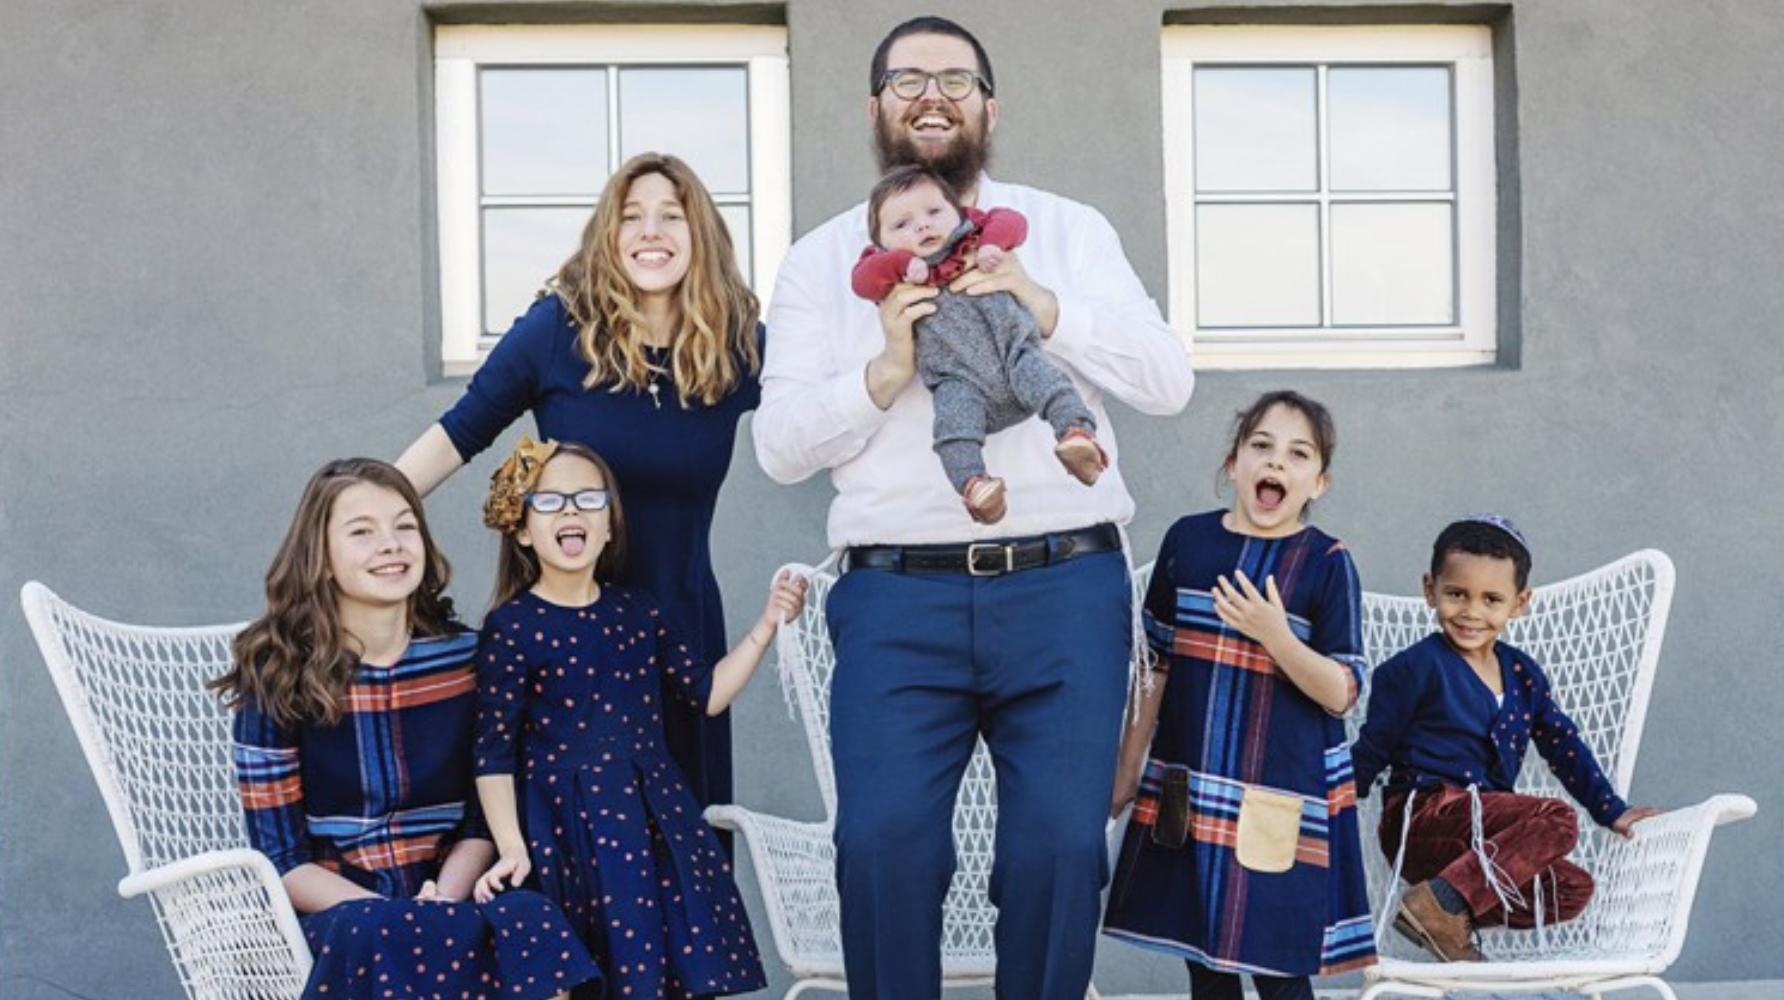 Rabbi Chaim, his wife Chavie and their five adopted children